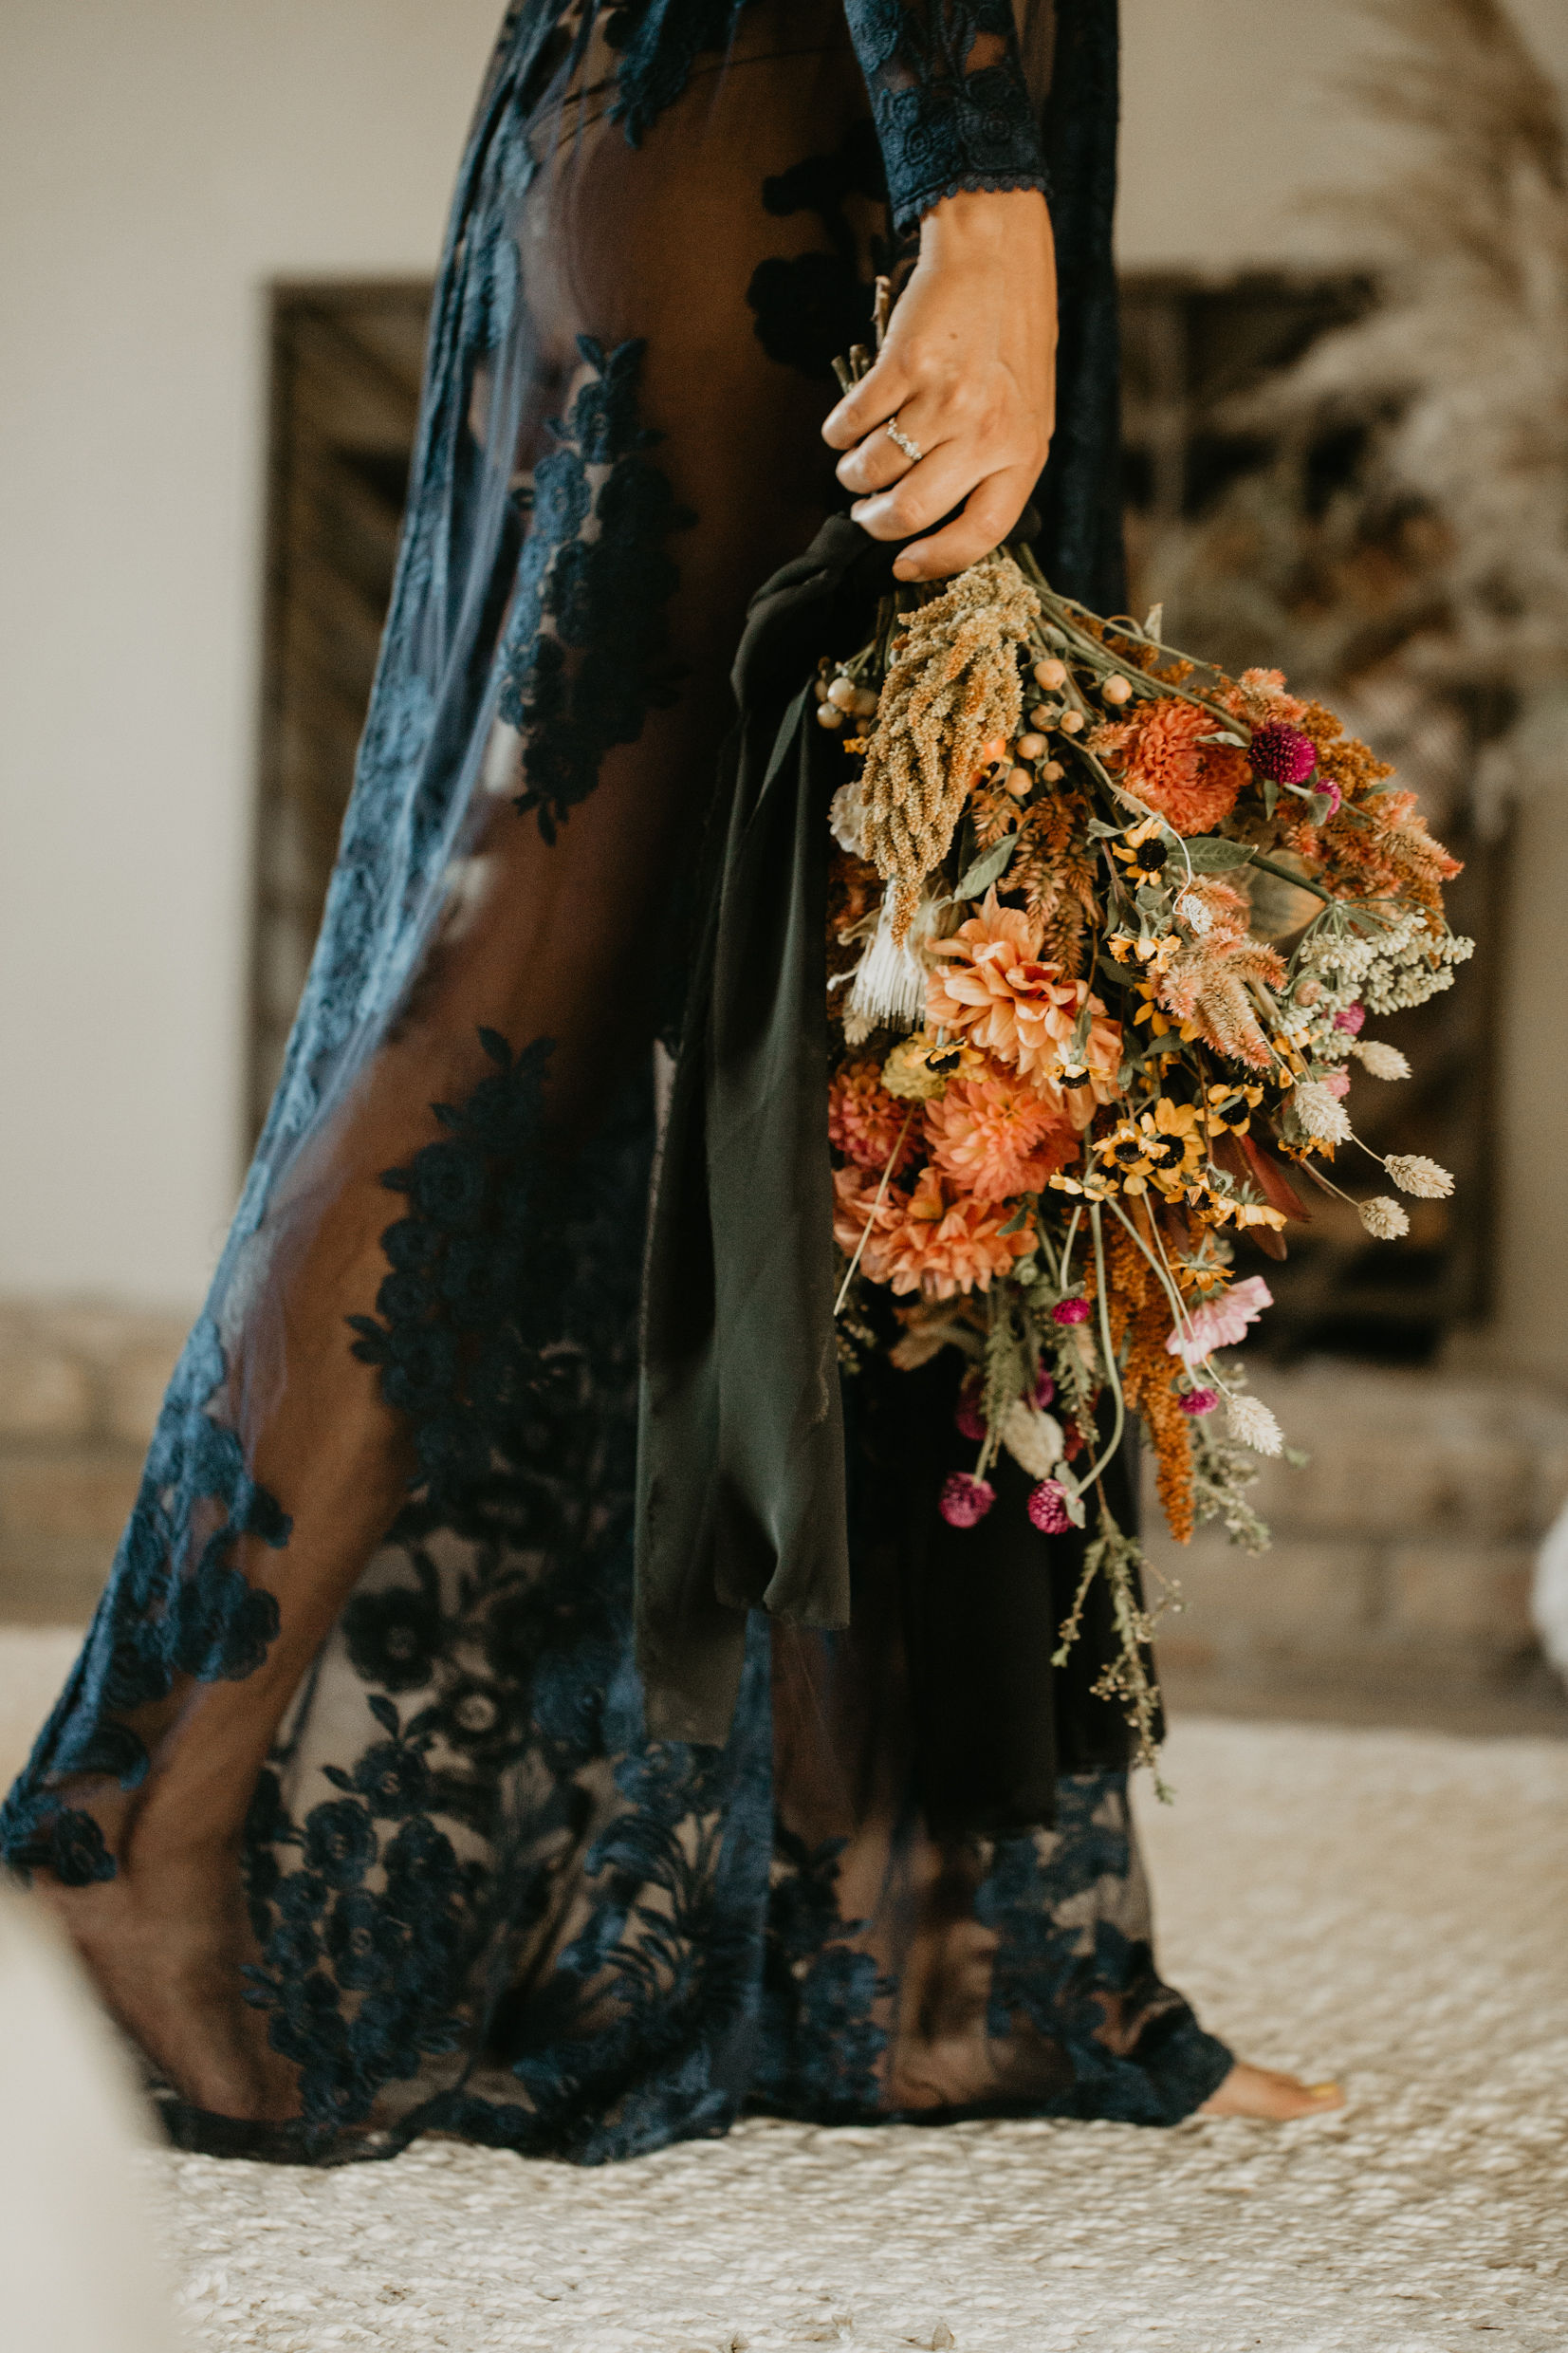 the-botanical-studio-scottsdale-event-wedding-florist.jpg